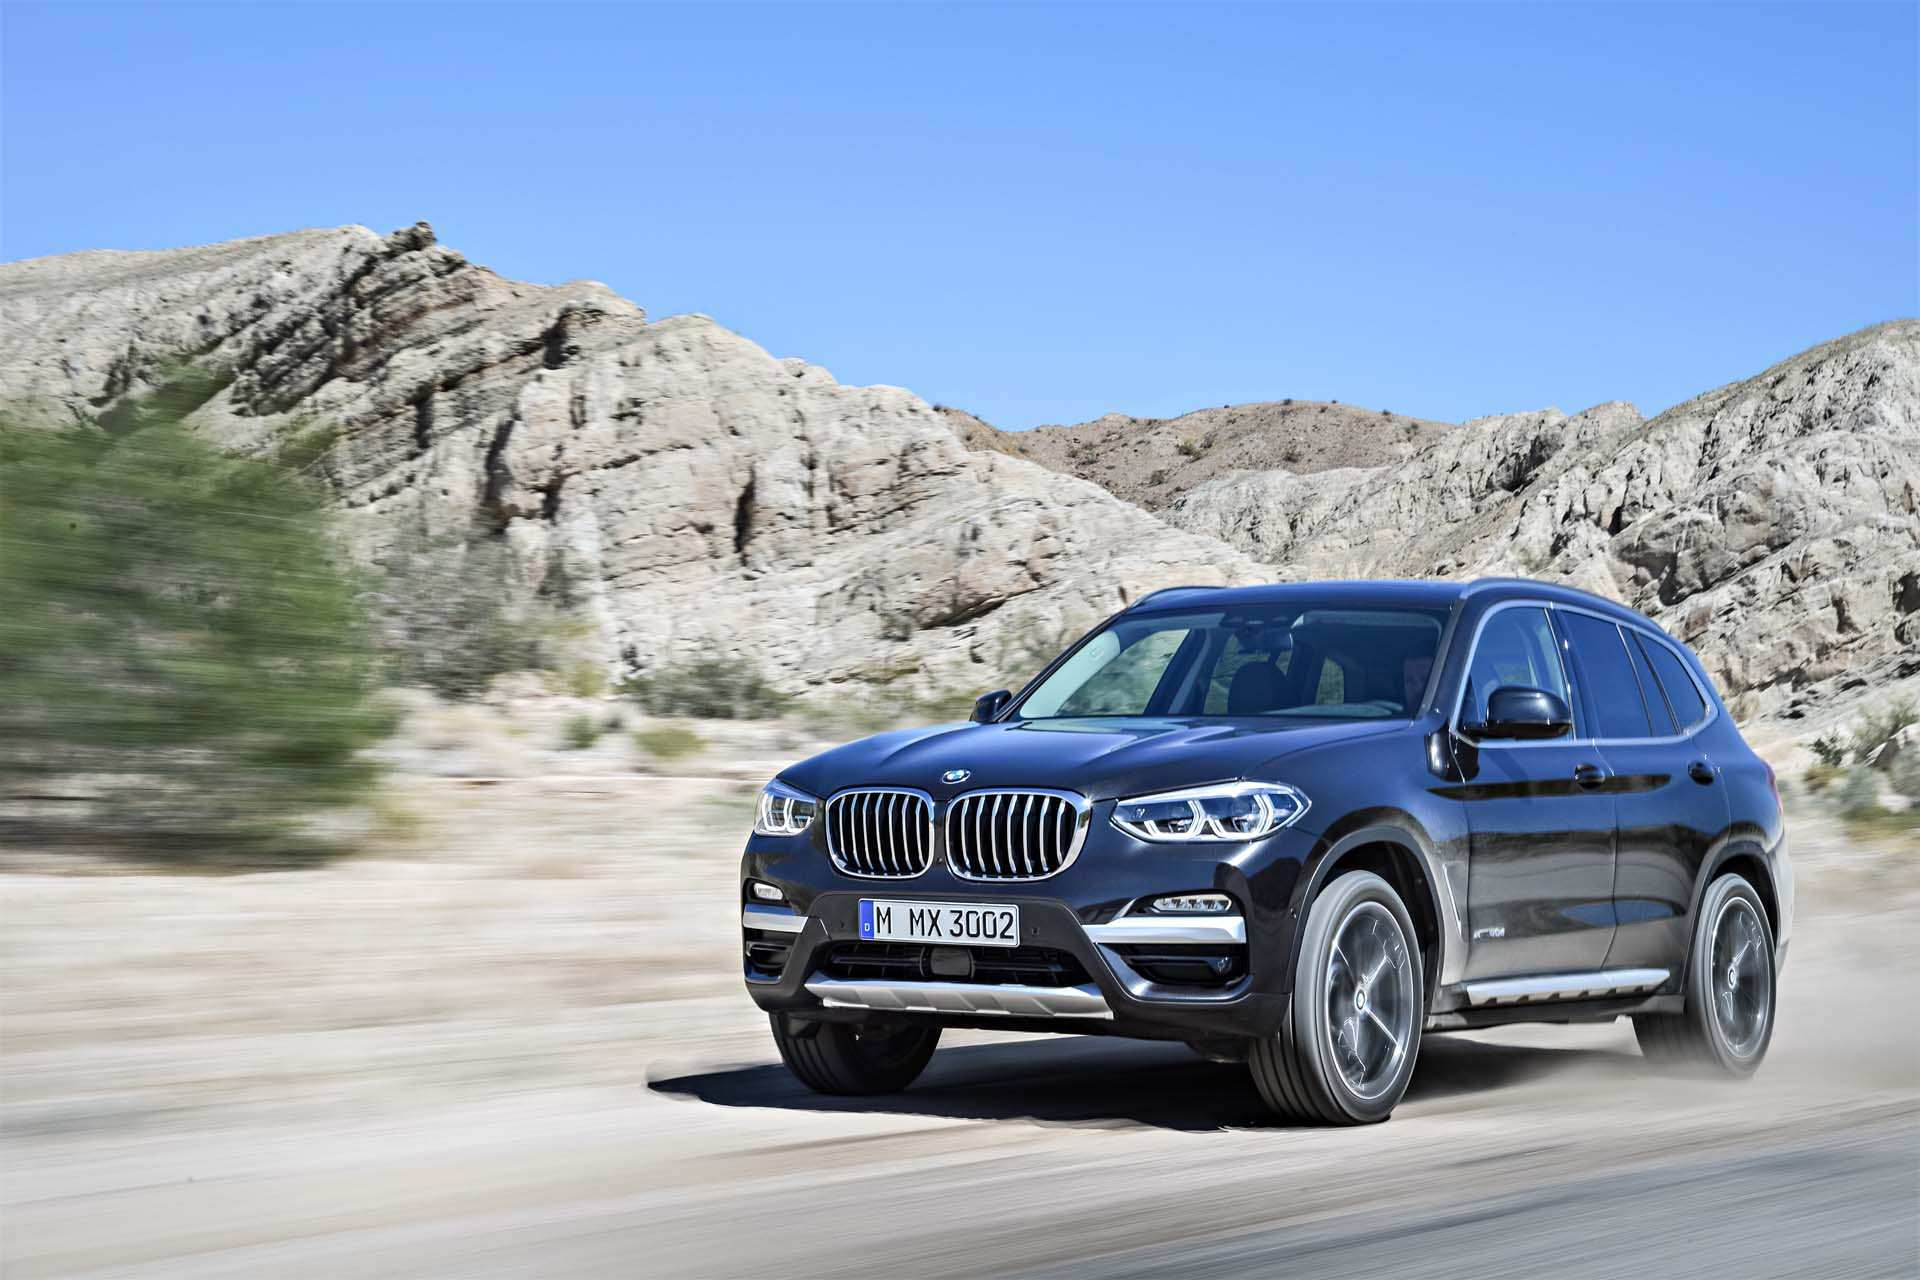 72 New 2020 Bmw X3 Electric Release with 2020 Bmw X3 Electric